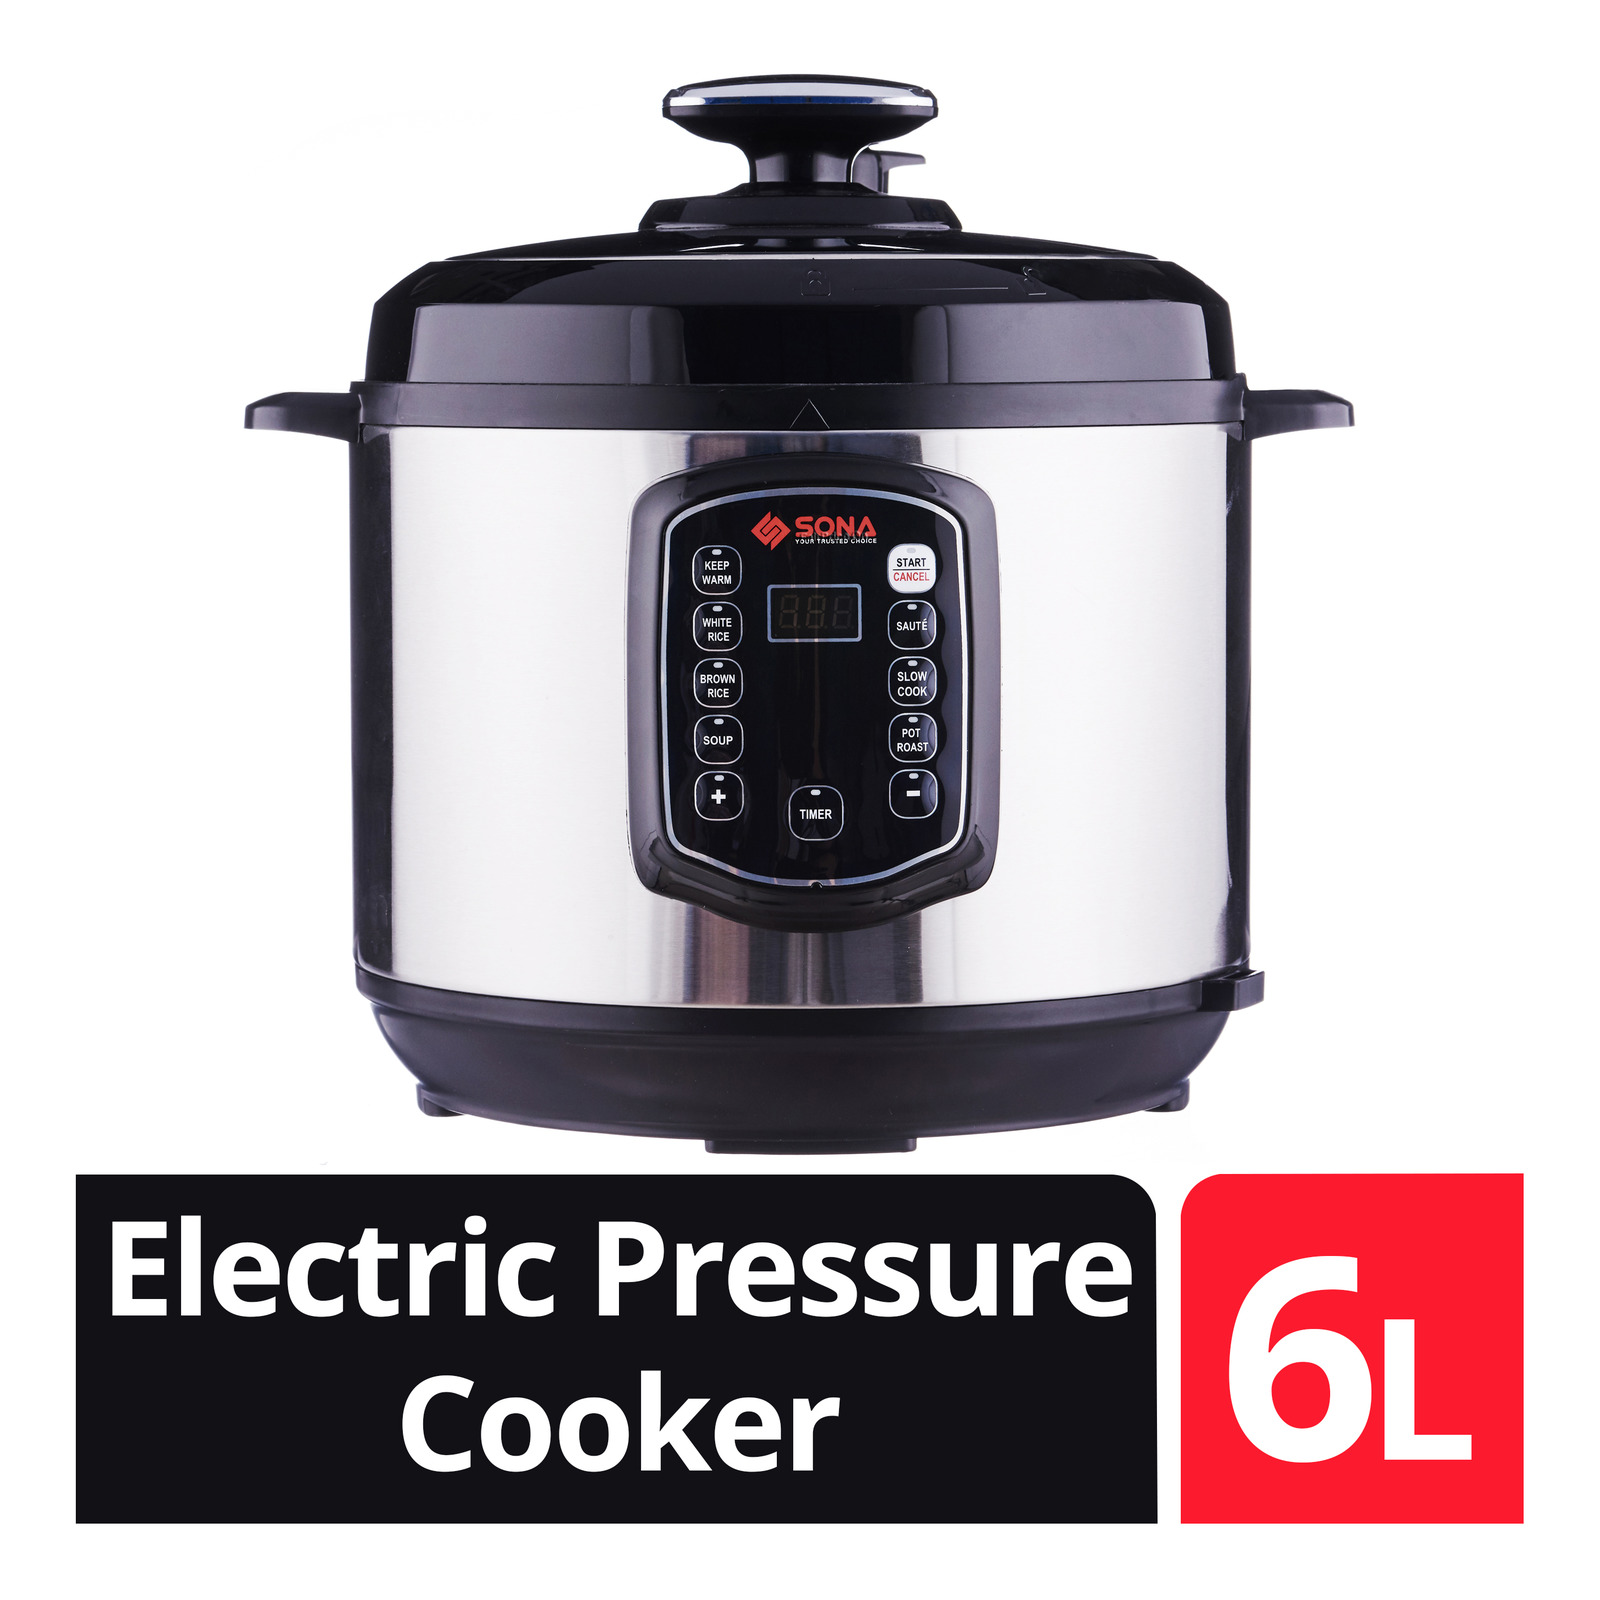 Sona 6.0L Electric Pressure Cooker - SPC2501